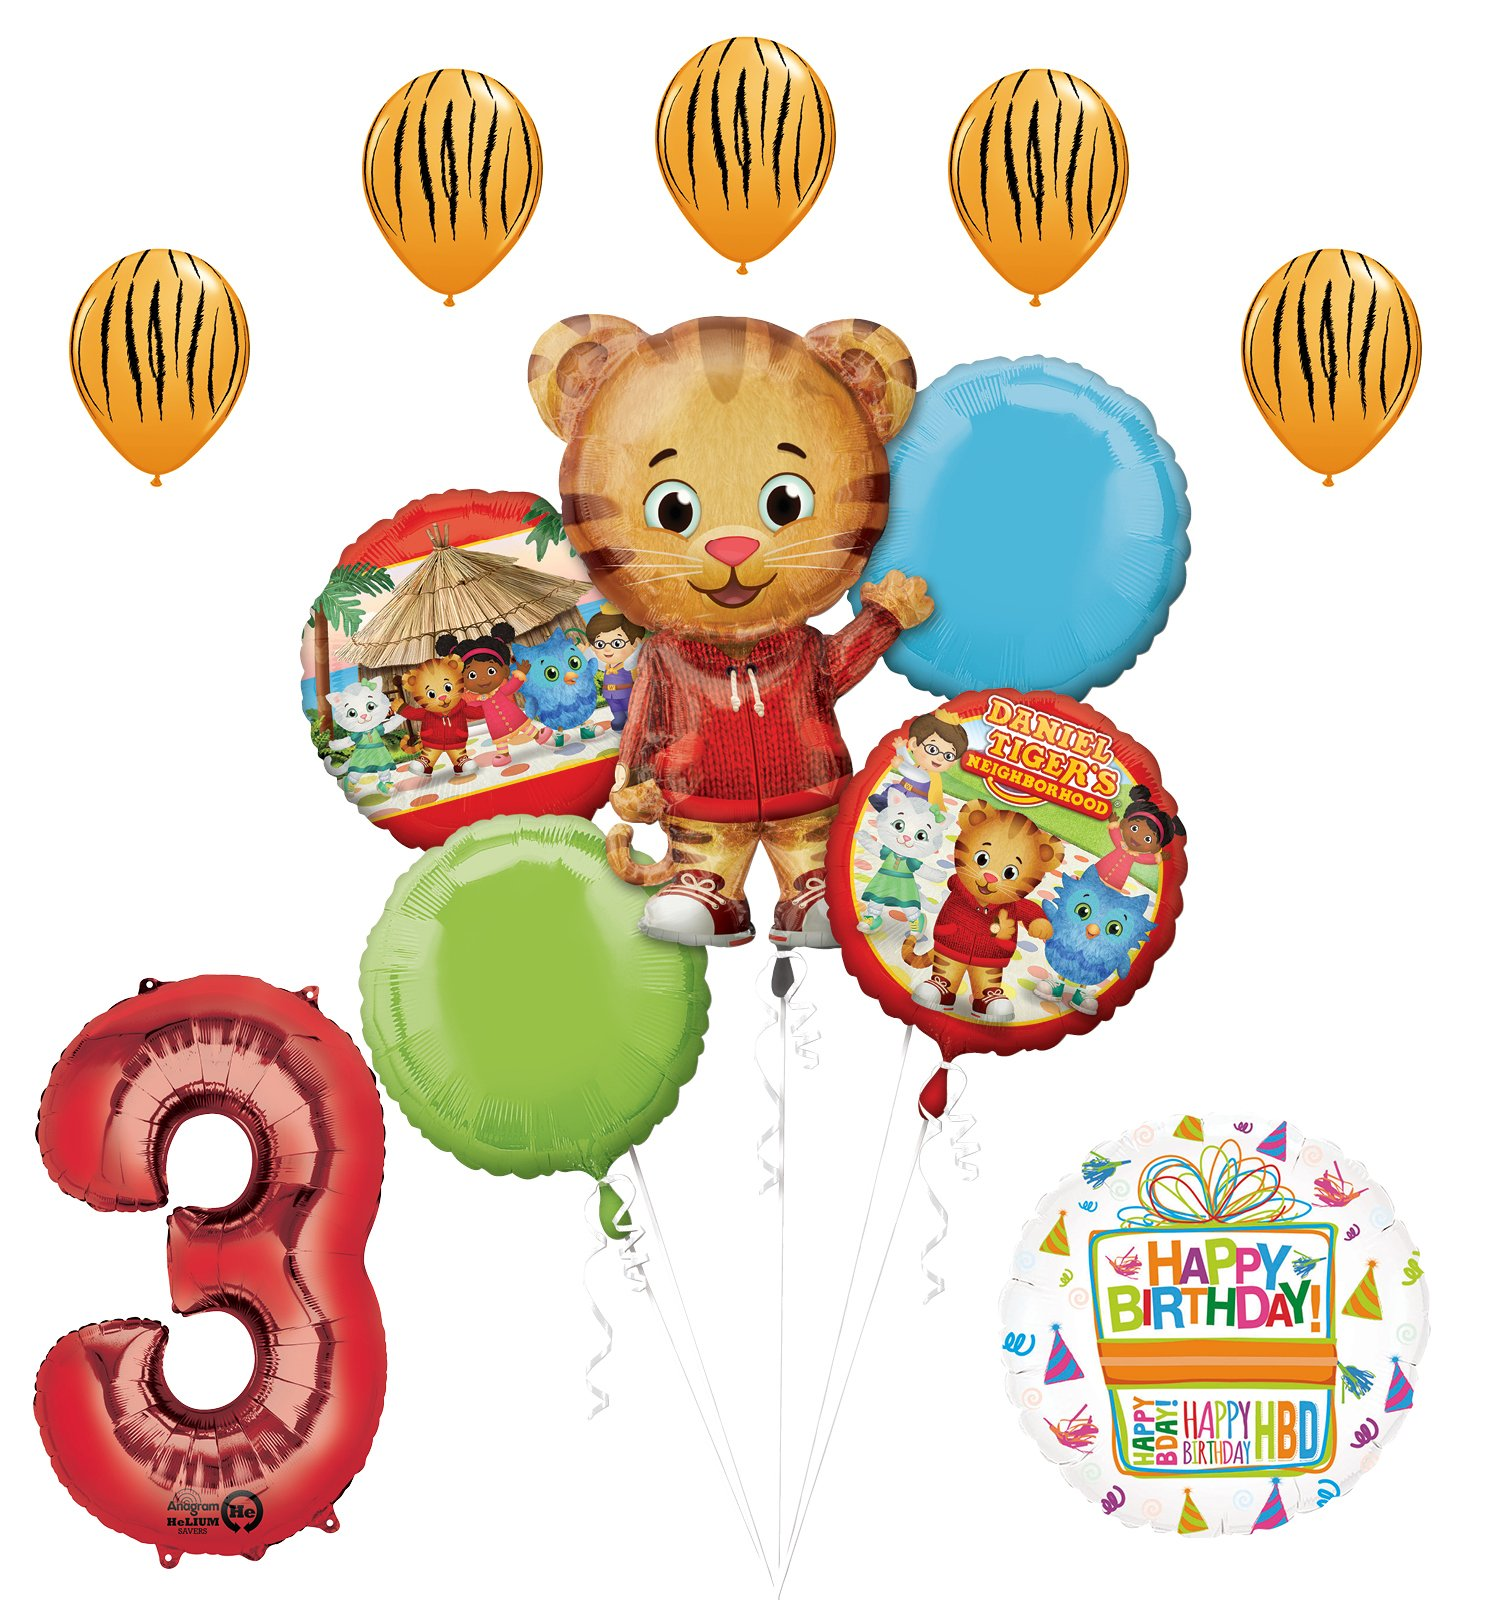 The Ultimate Daniel Tiger Neighborhood 3rd Birthday Party Supplies and Balloon Decorations